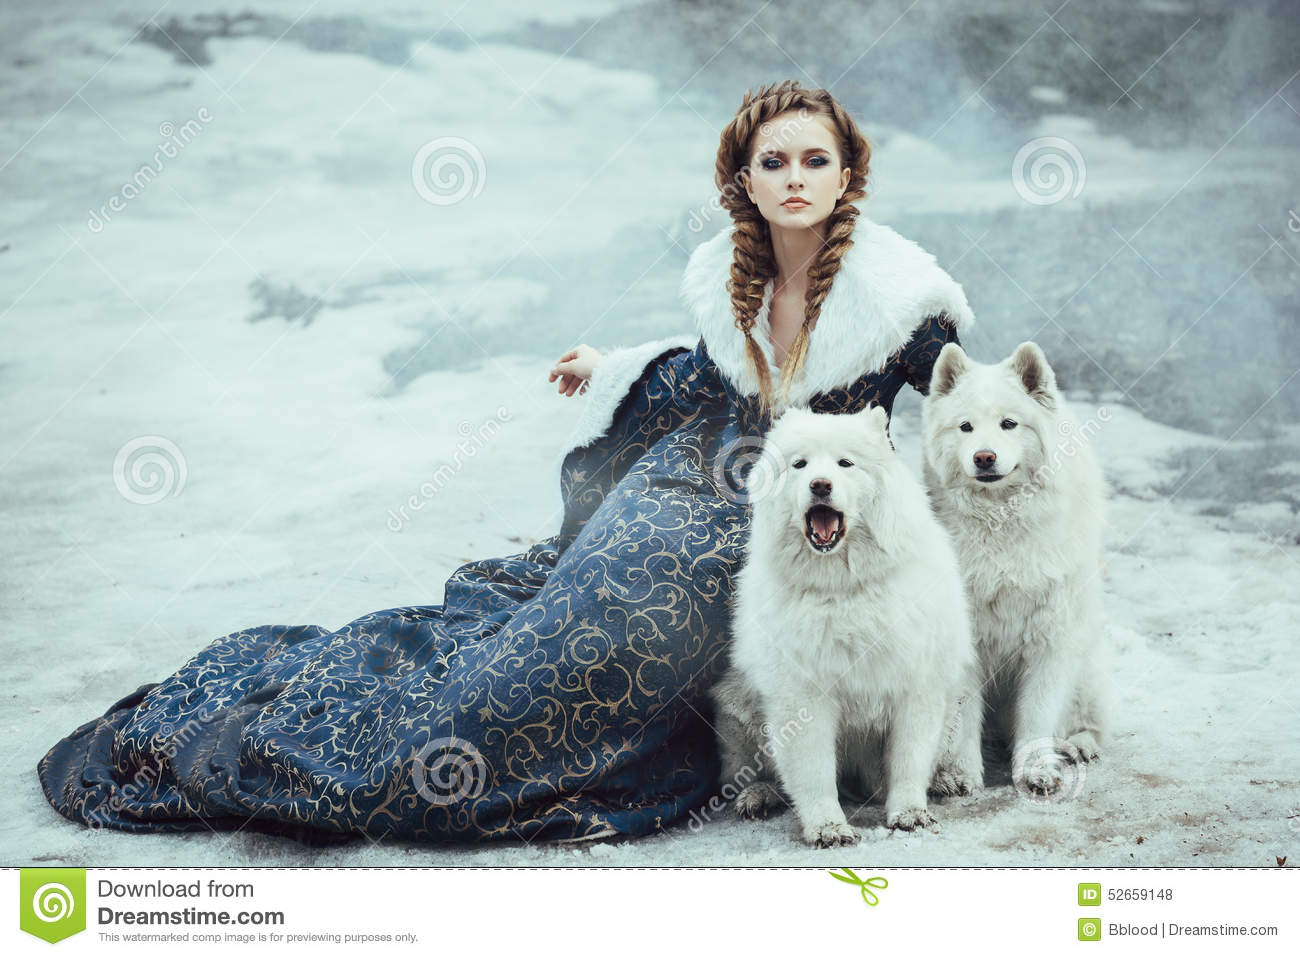 The Woman On Winter Walk With A Dog Stock Photo - Image